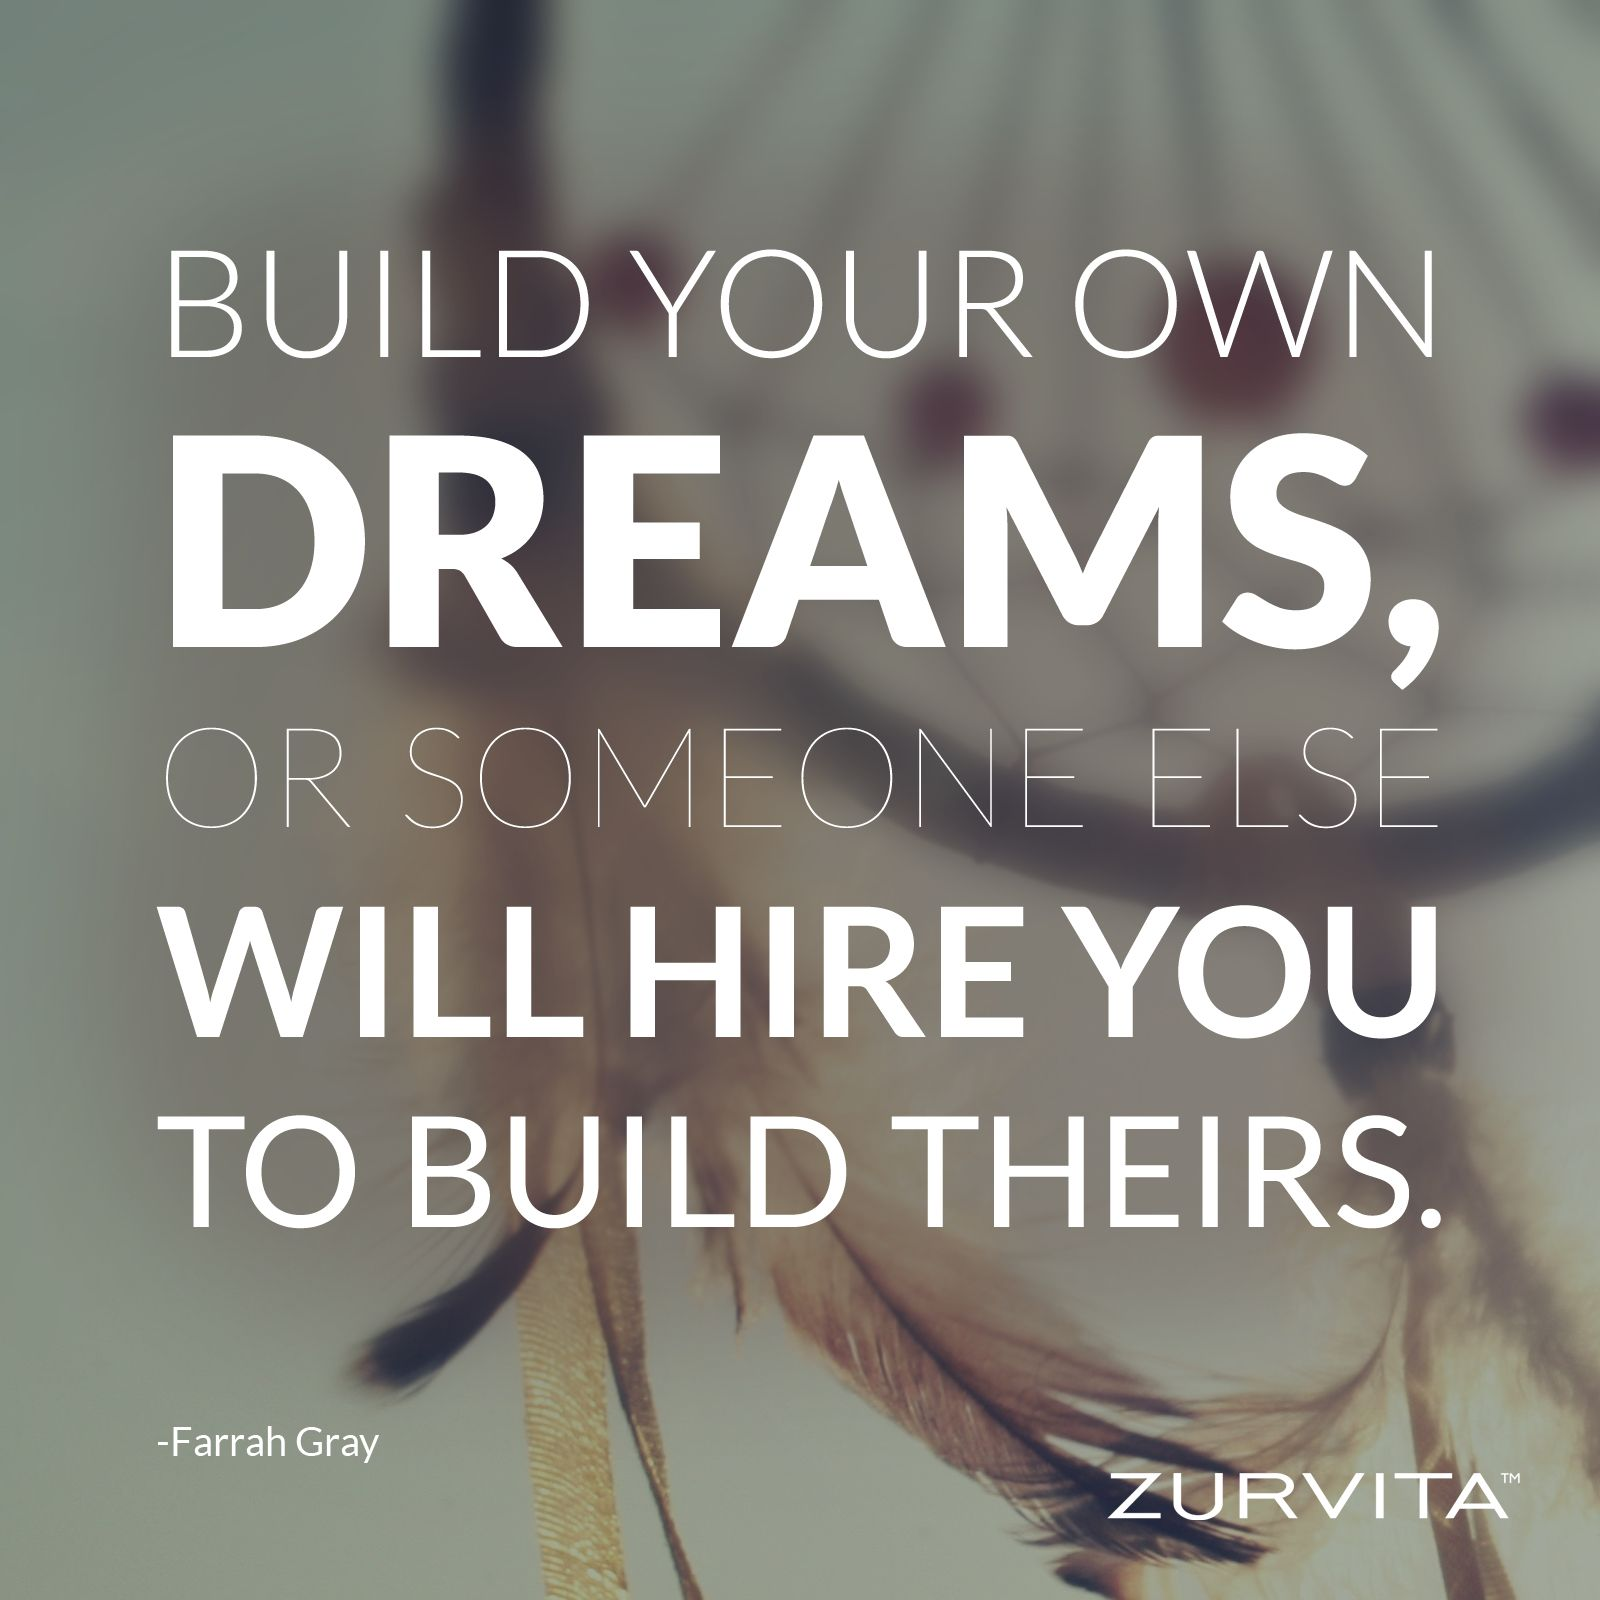 Build your own dreams or someone else will hire you to